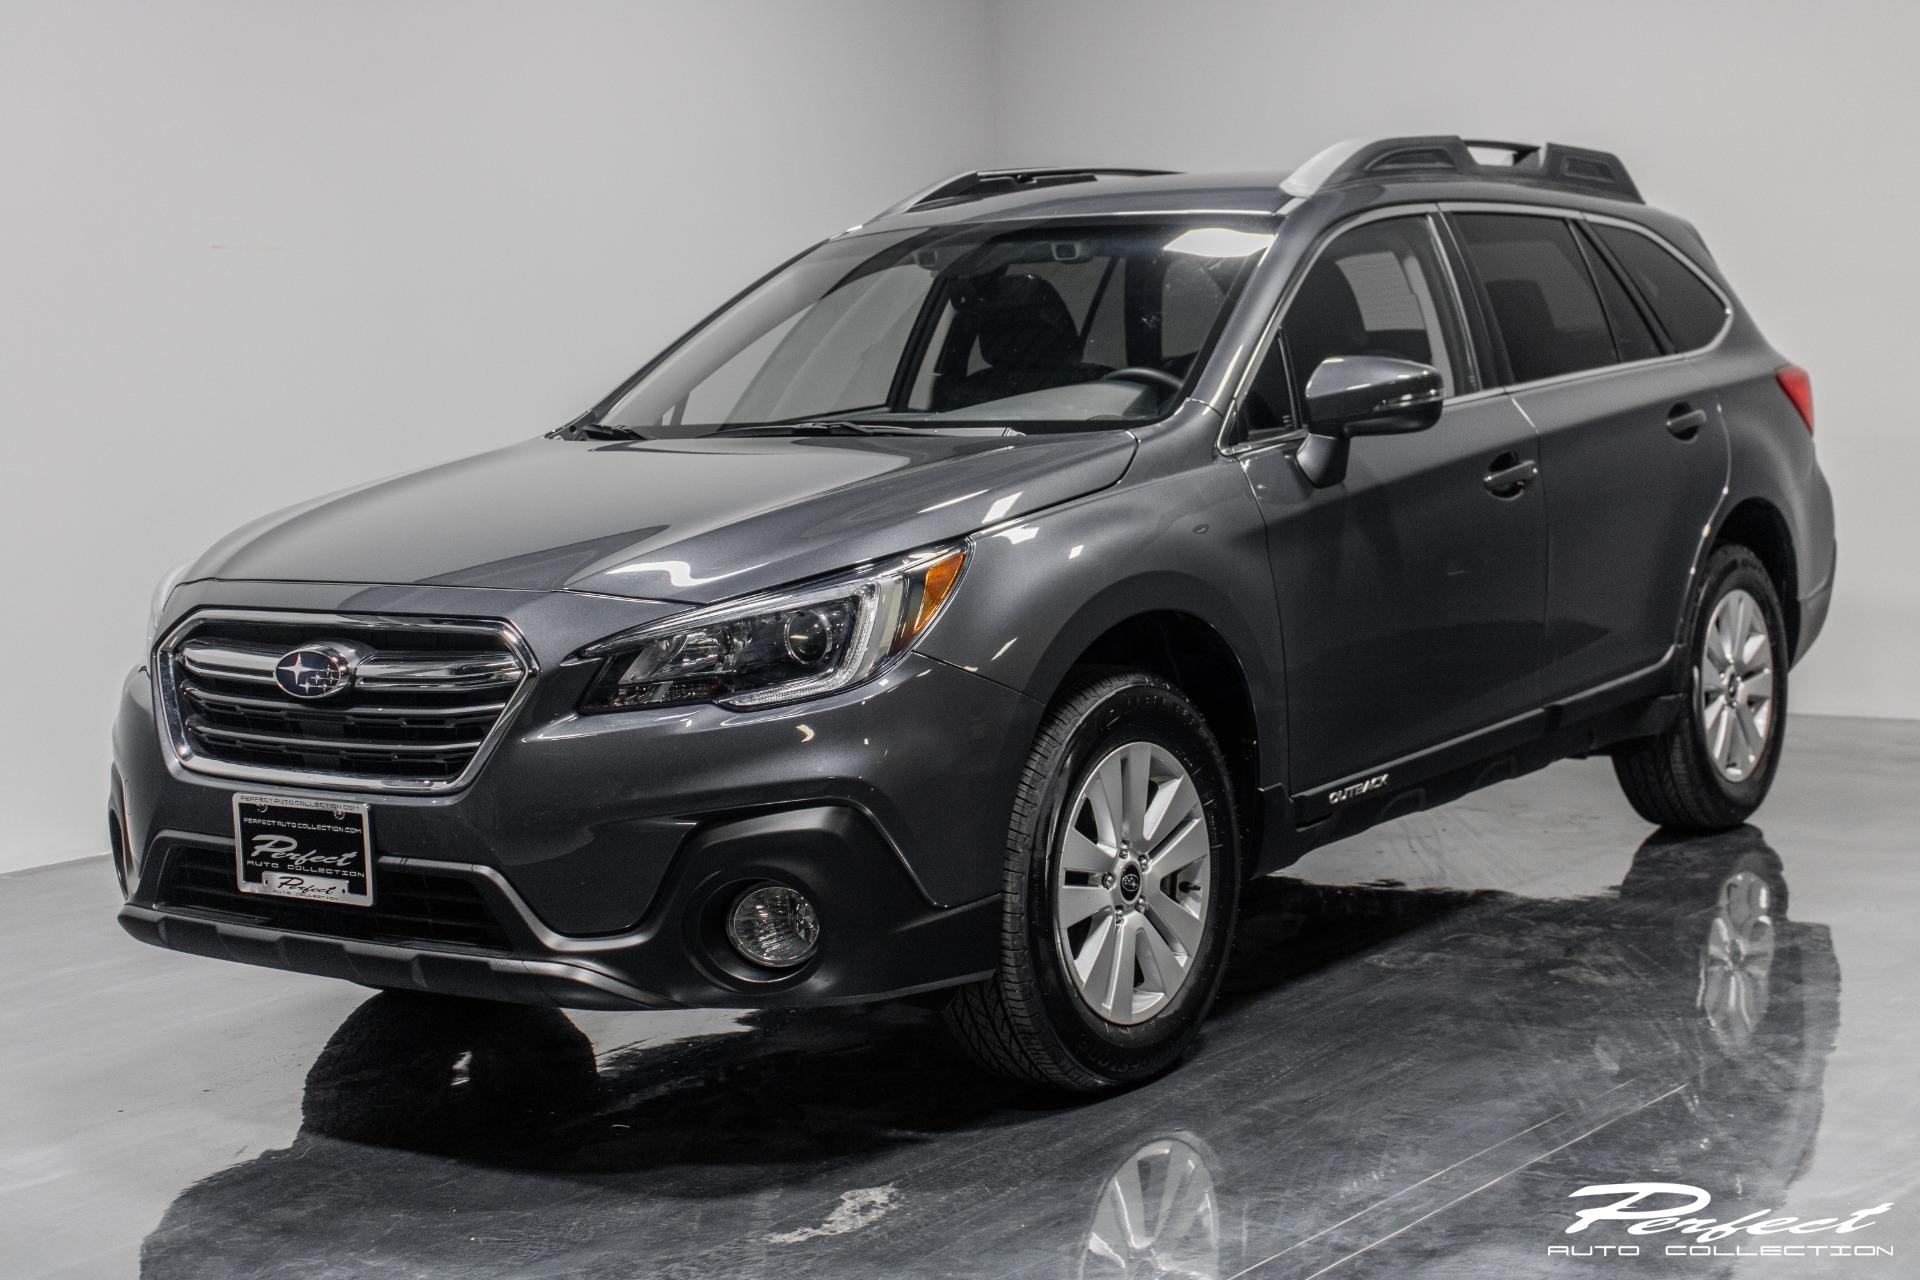 Used 2019 Subaru Outback 2.5i Premium Wagon 4D for sale Sold at Perfect Auto Collection in Akron OH 44310 1